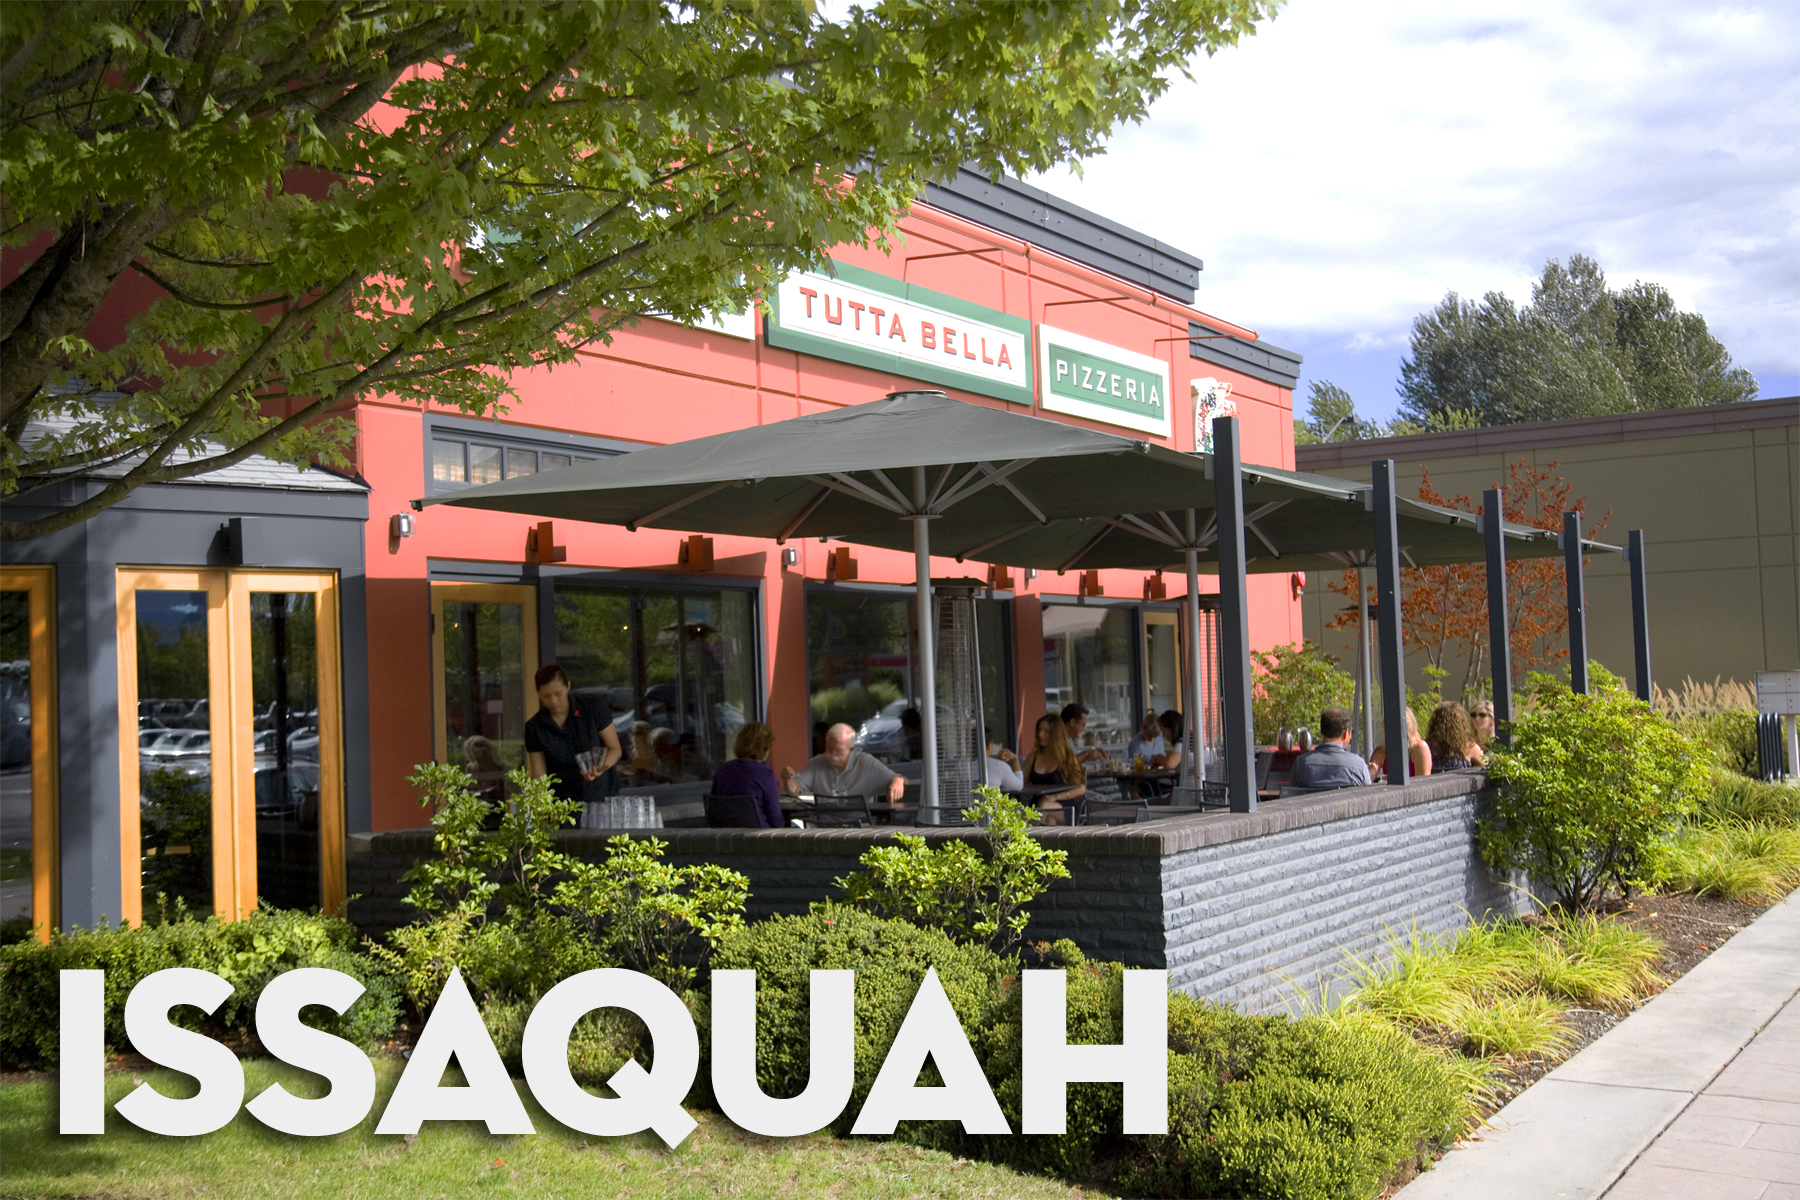 Pizza in Issaquah